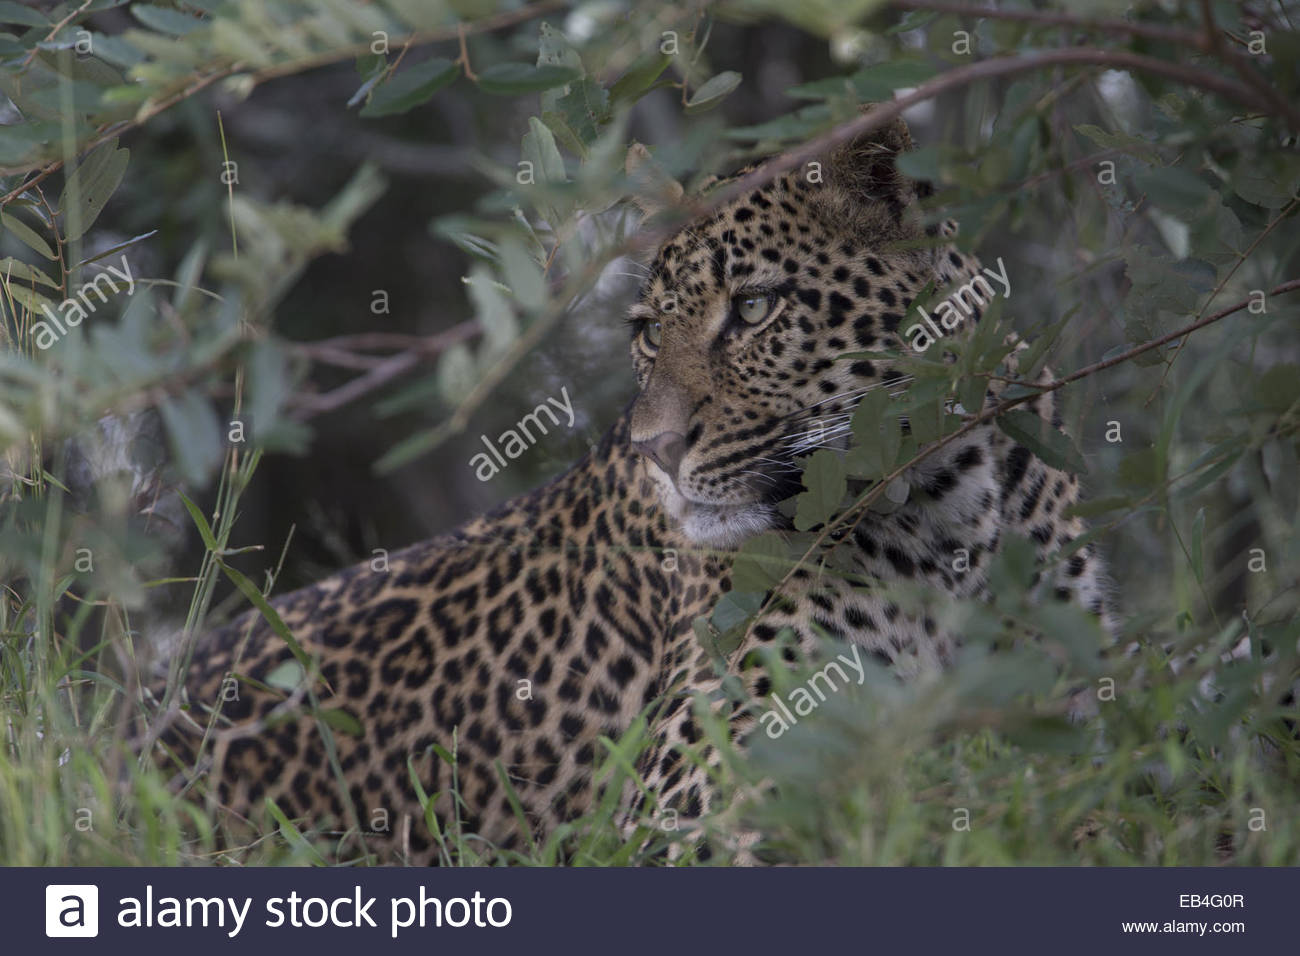 A leopard, Panthera pardus, concealed in shrubs. - Stock Image